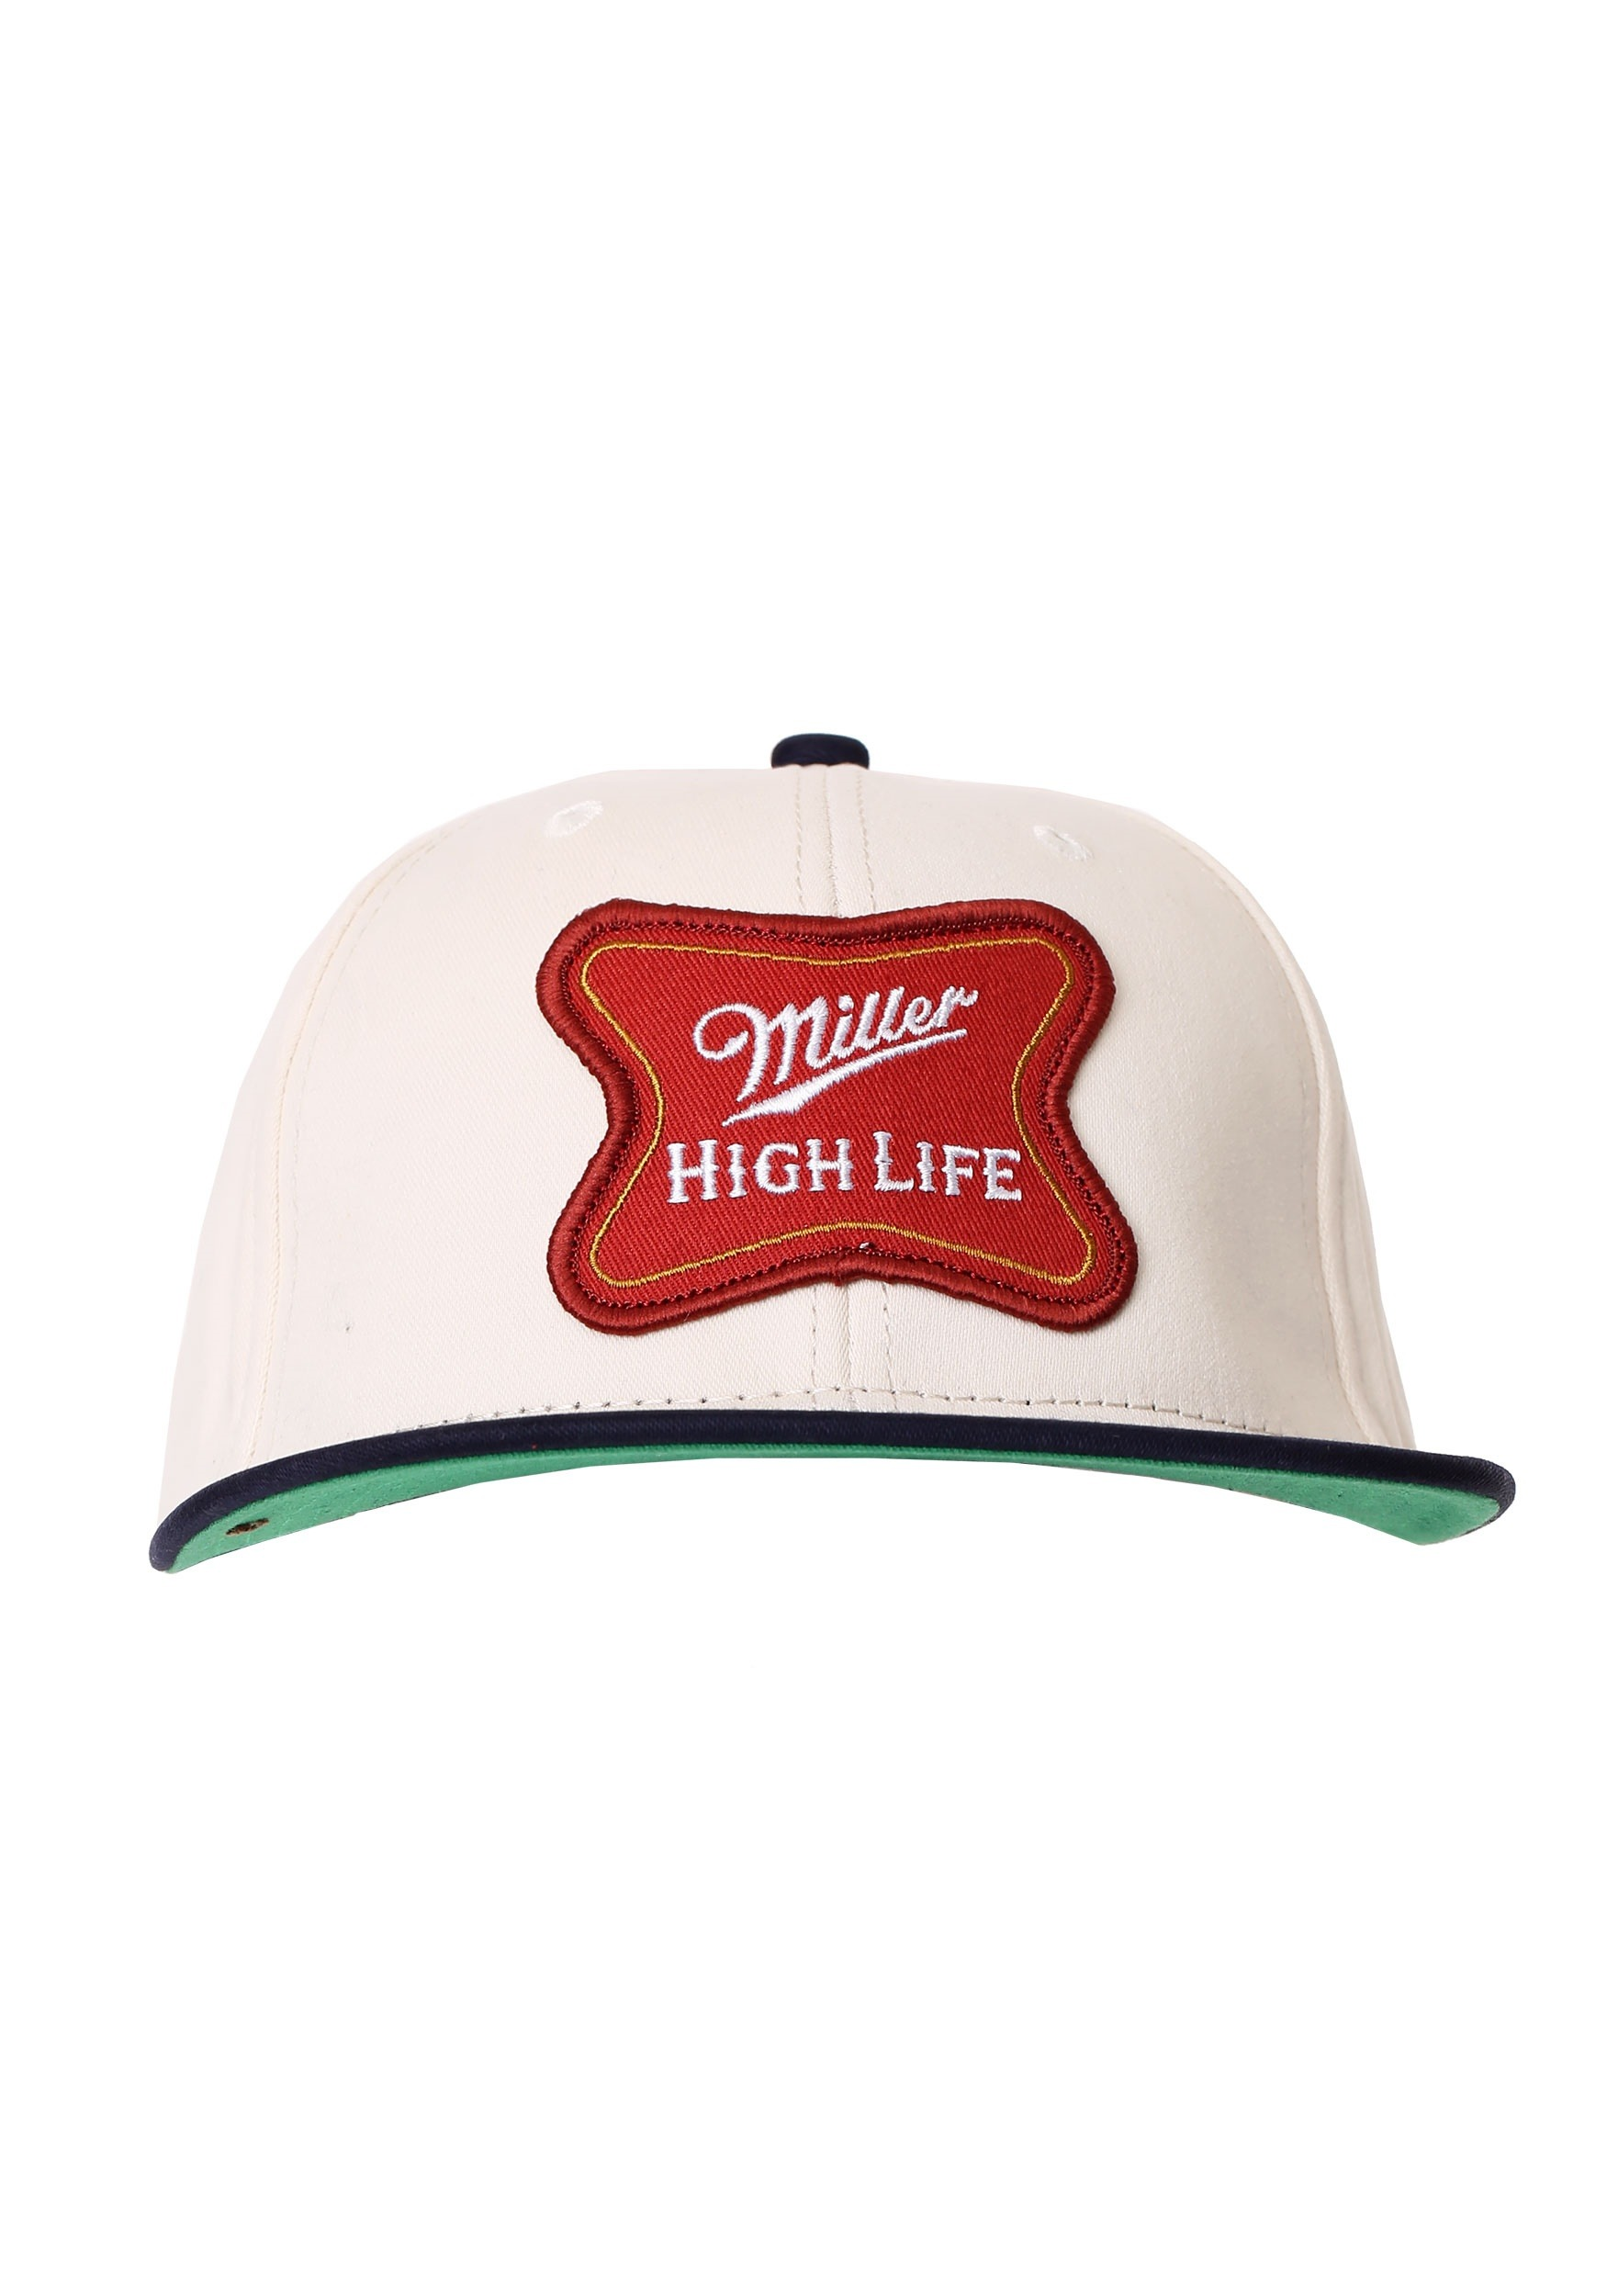 fae8d57e0e2de Miller High Life Logo Cotton Twill Snapback Hat